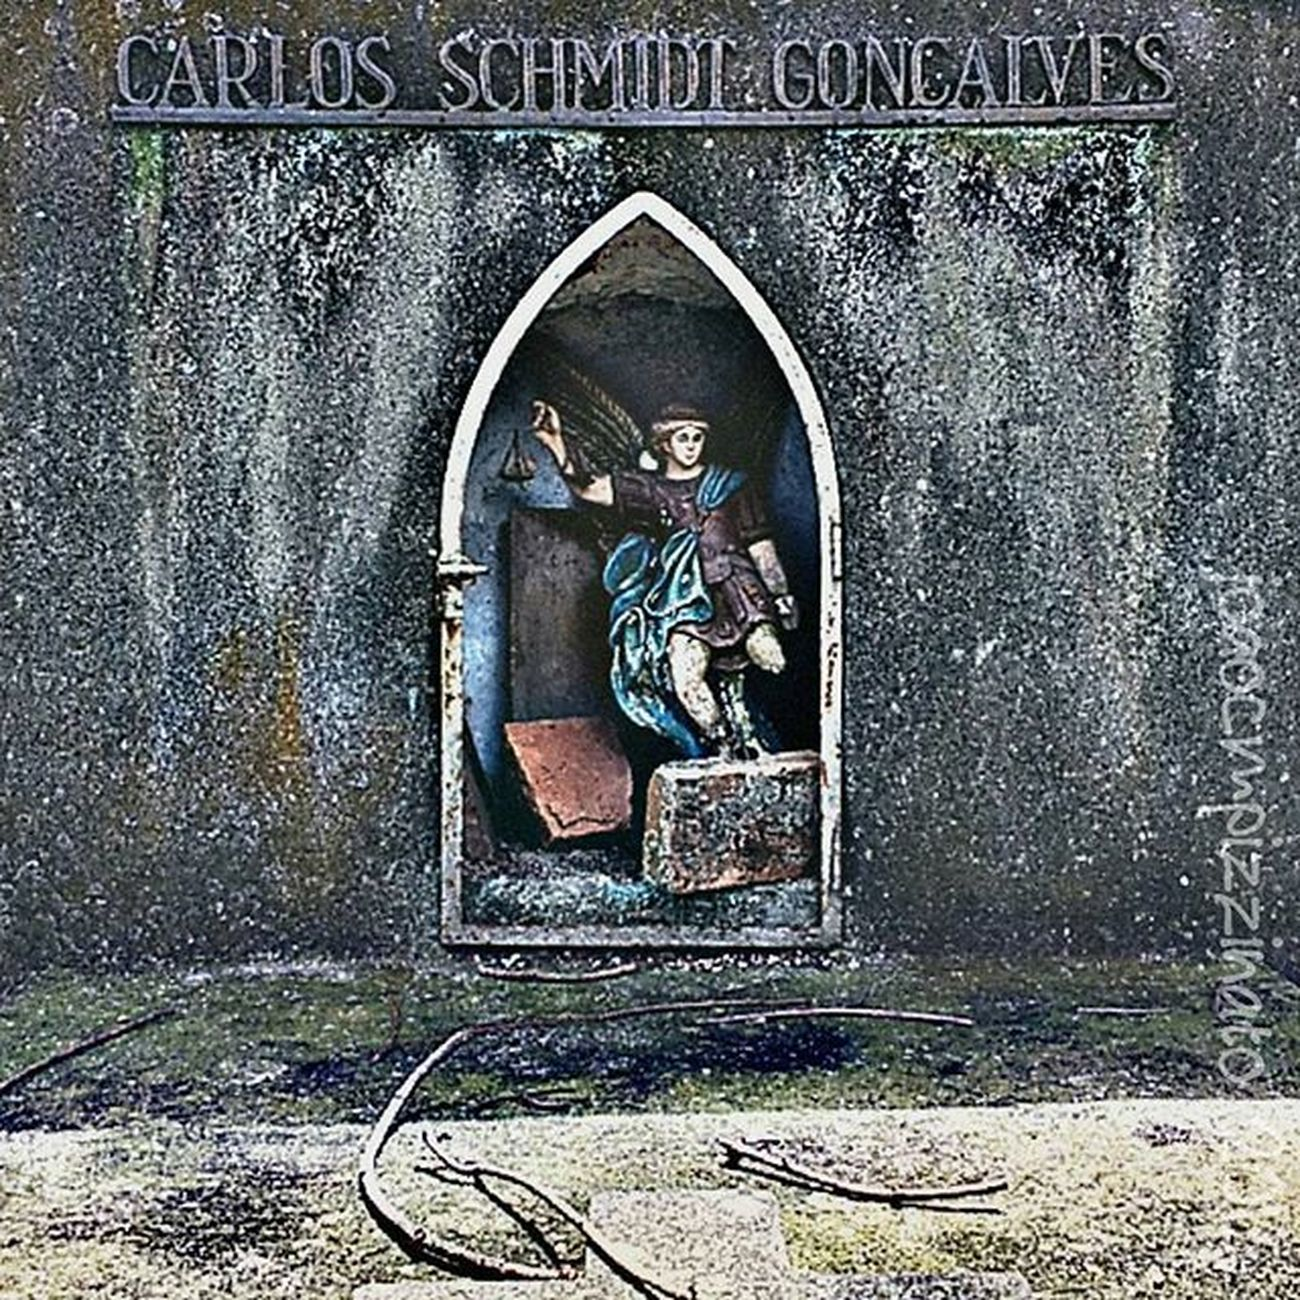 Infinity_gothic_grave Aj_graveyard Graveyard_dead Taphophiles_only Tv_churchandgraves Church_masters Masters_of_darkness Fa_sacral Tv_urbex Vivoartesacra Grave_gallery Kings_gothic Obscure_of_our_world Talking_statues Igw_gothika Dark_captures The_great_gothic_world Cemetery Urban Colors City Zonasul Saopaulo Brasil Photograph